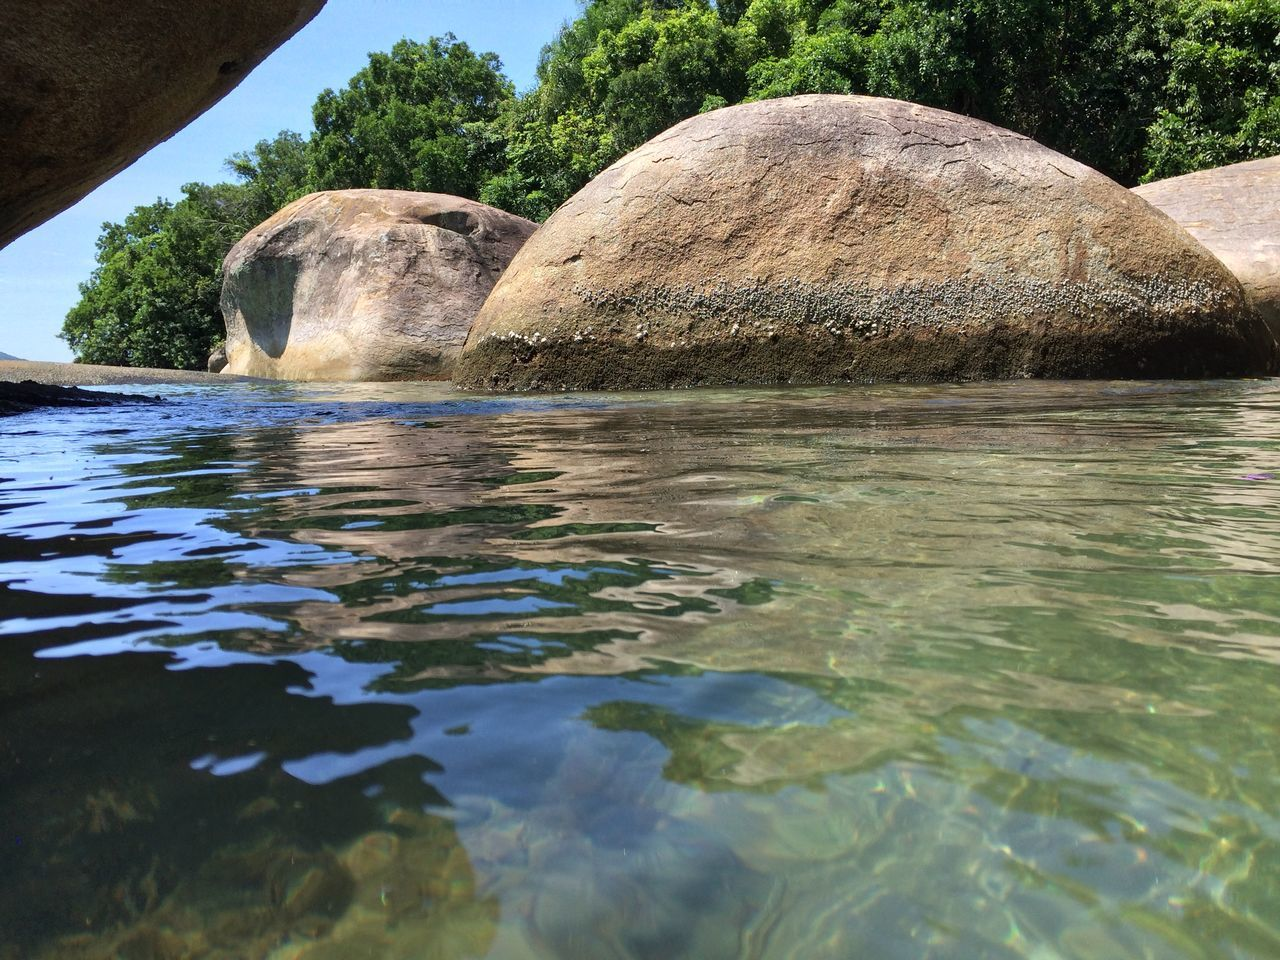 rock - object, water, waterfront, day, reflection, nature, outdoors, no people, tranquility, beauty in nature, scenics, sea, tree, sky